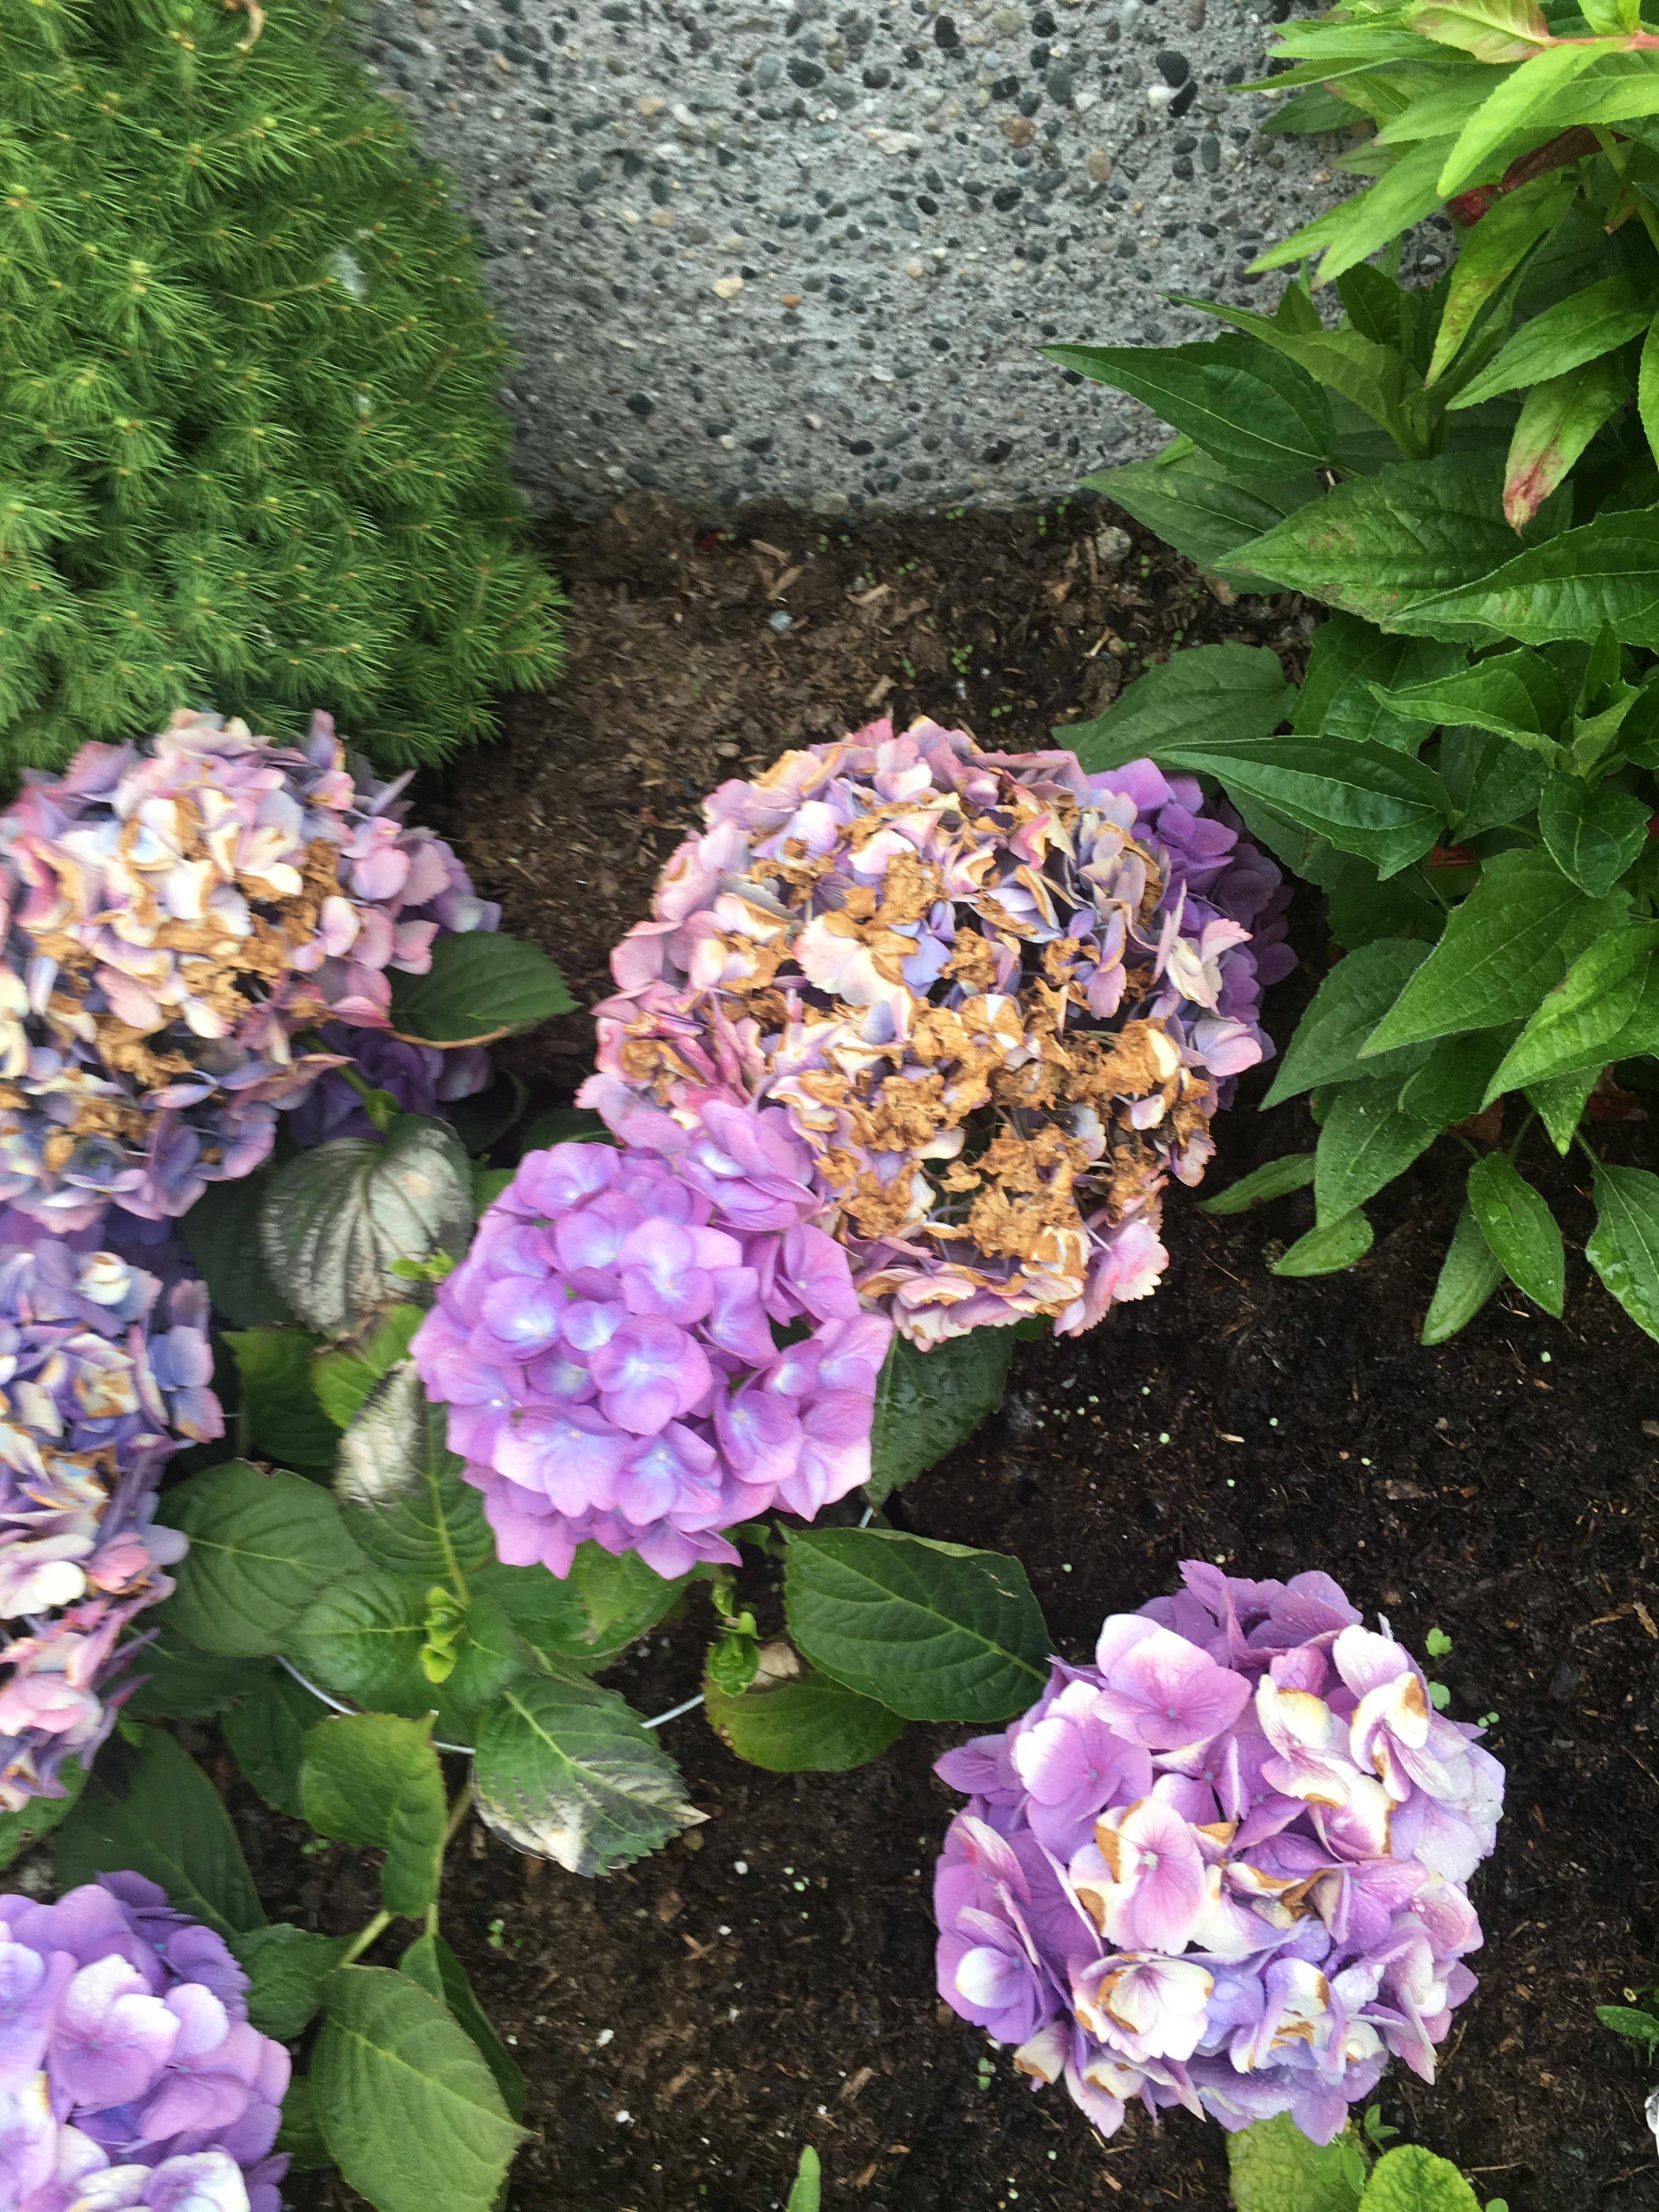 Why Are My Hydrangeas Turning Brown Gardening Garden Diy Home Flowers Roses Nature Landscaping Horticulture Hydrangea Care Hydrangea Brown Flowers